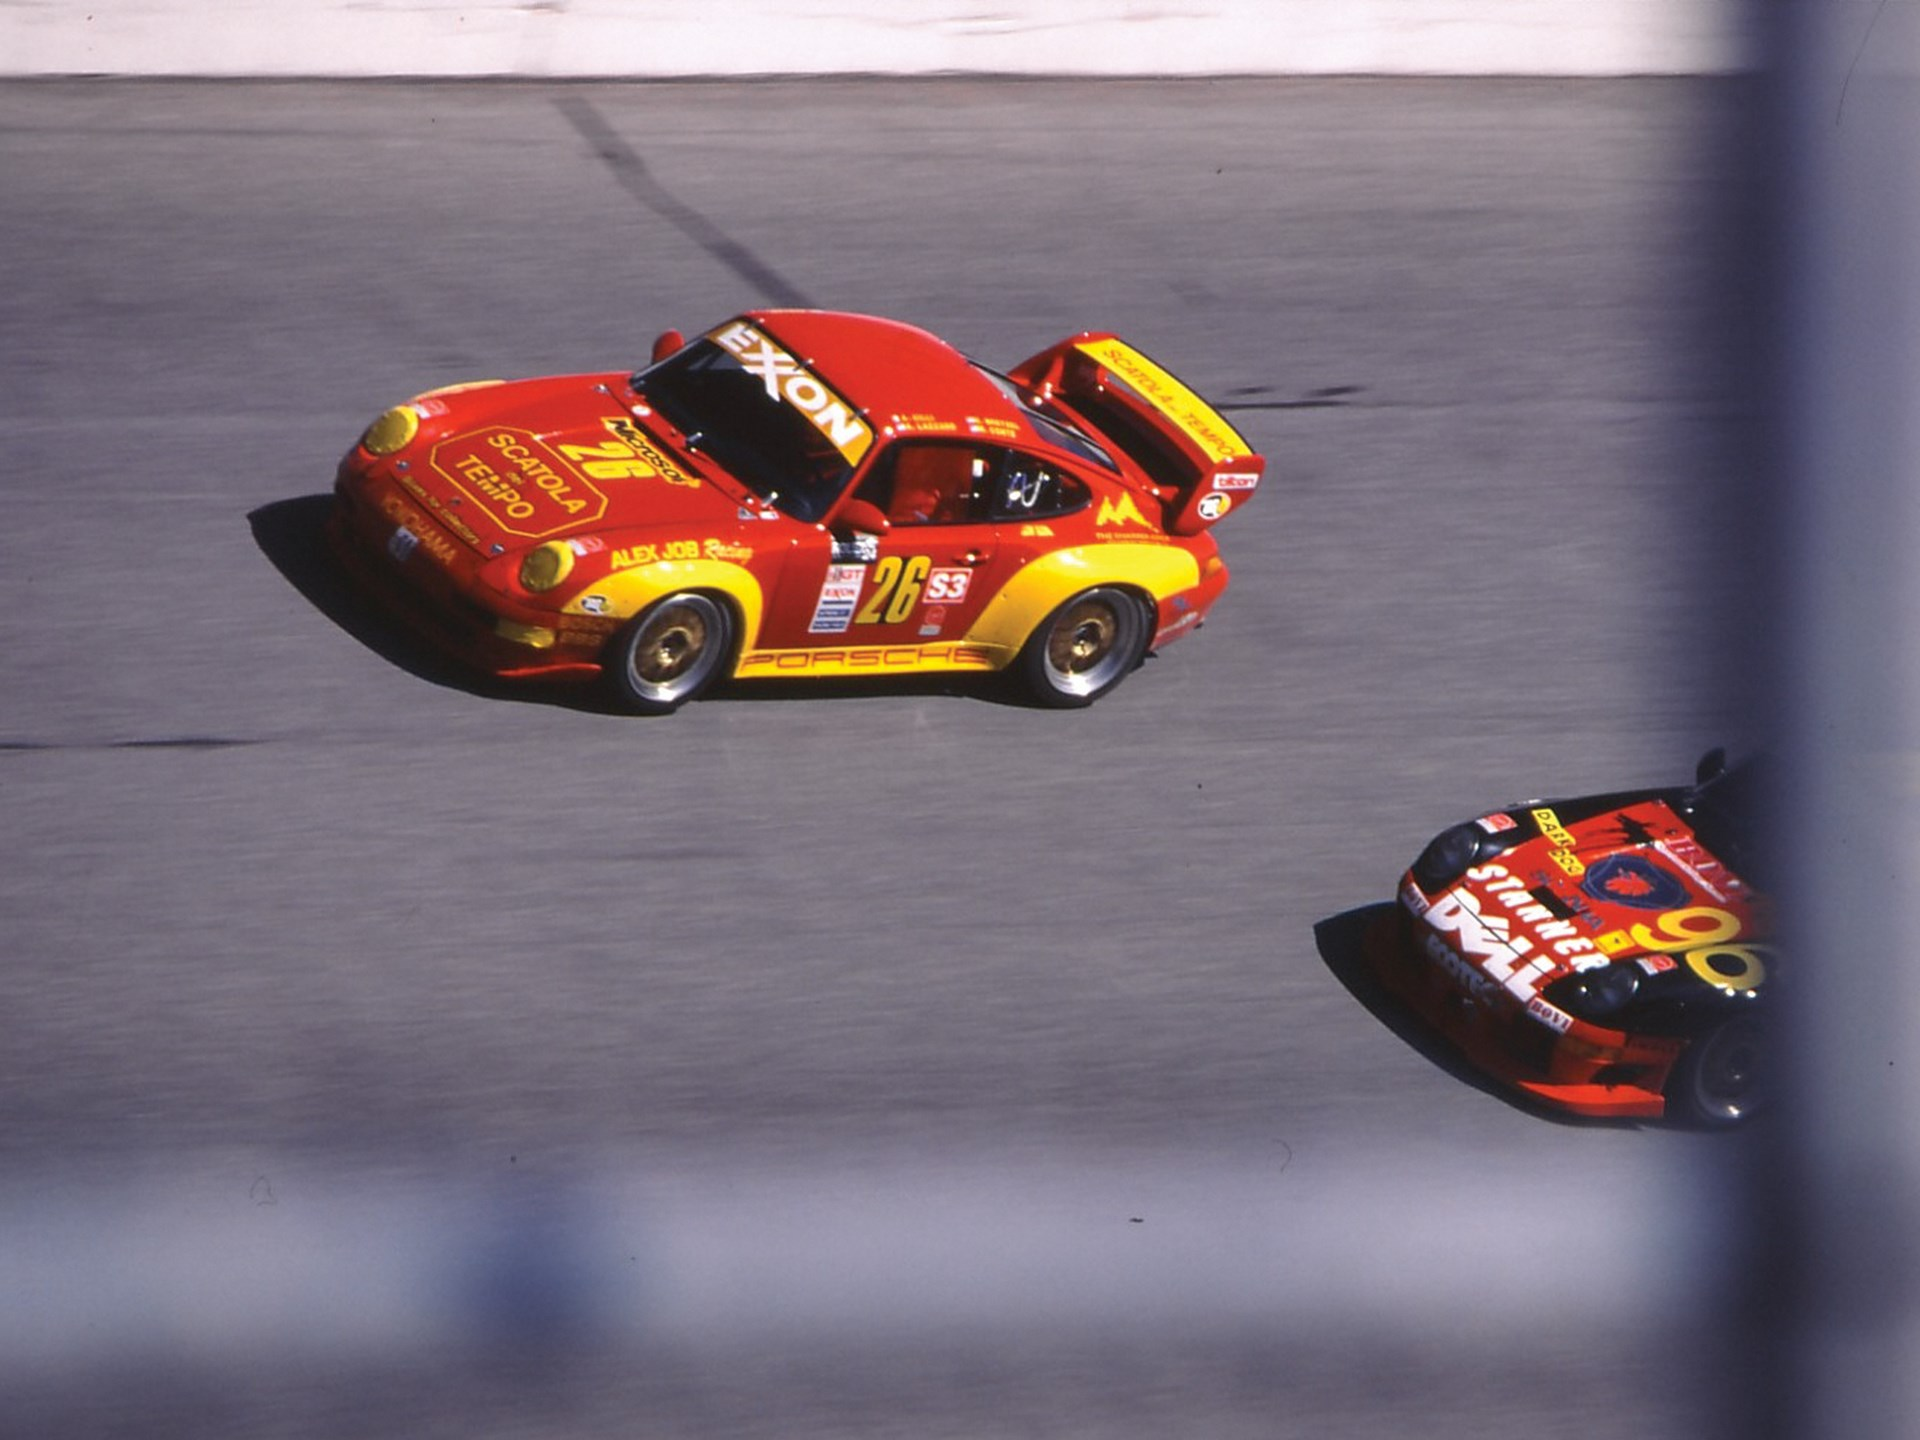 The RSR at the 1997 24 Hours of Daytona.